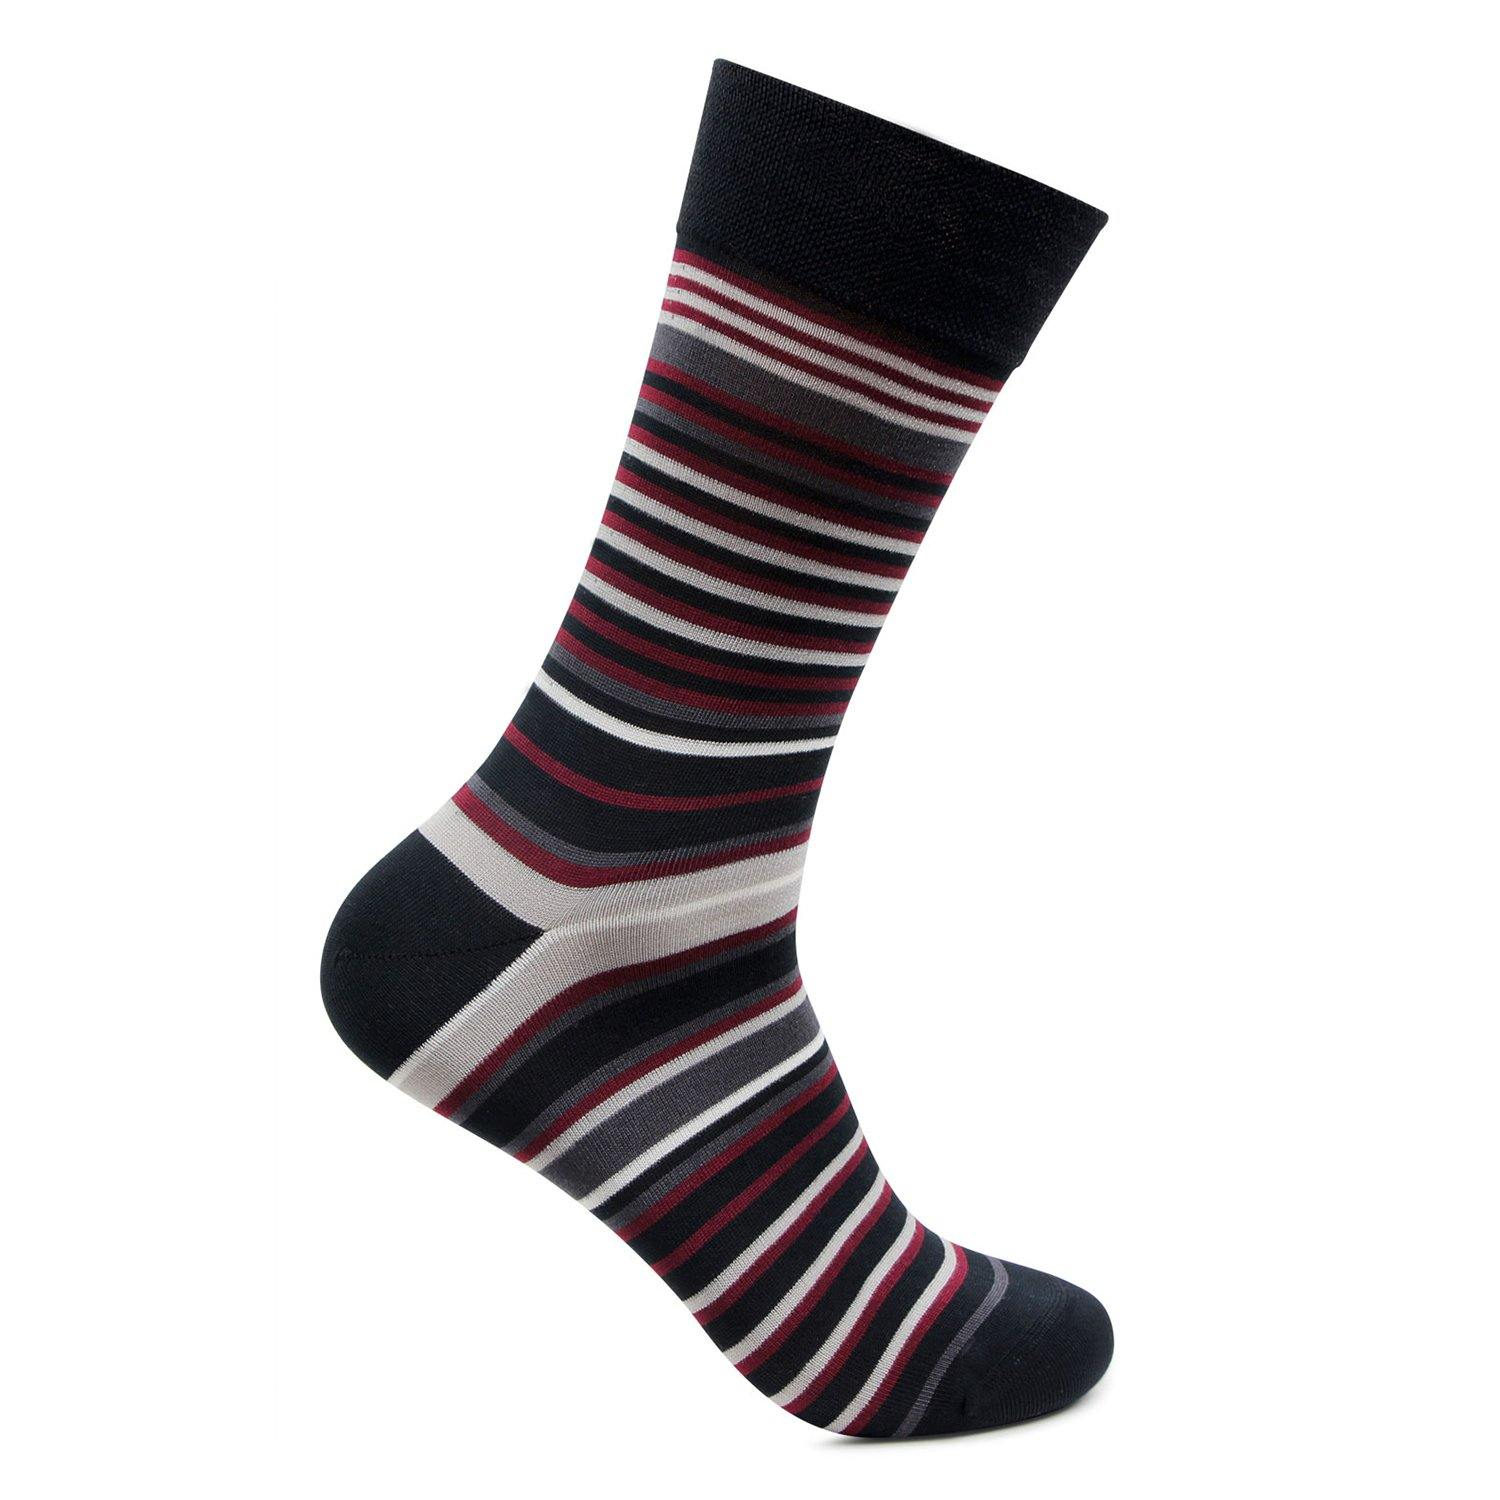 Men's Formal Signature Collection Striped Pattern Socks